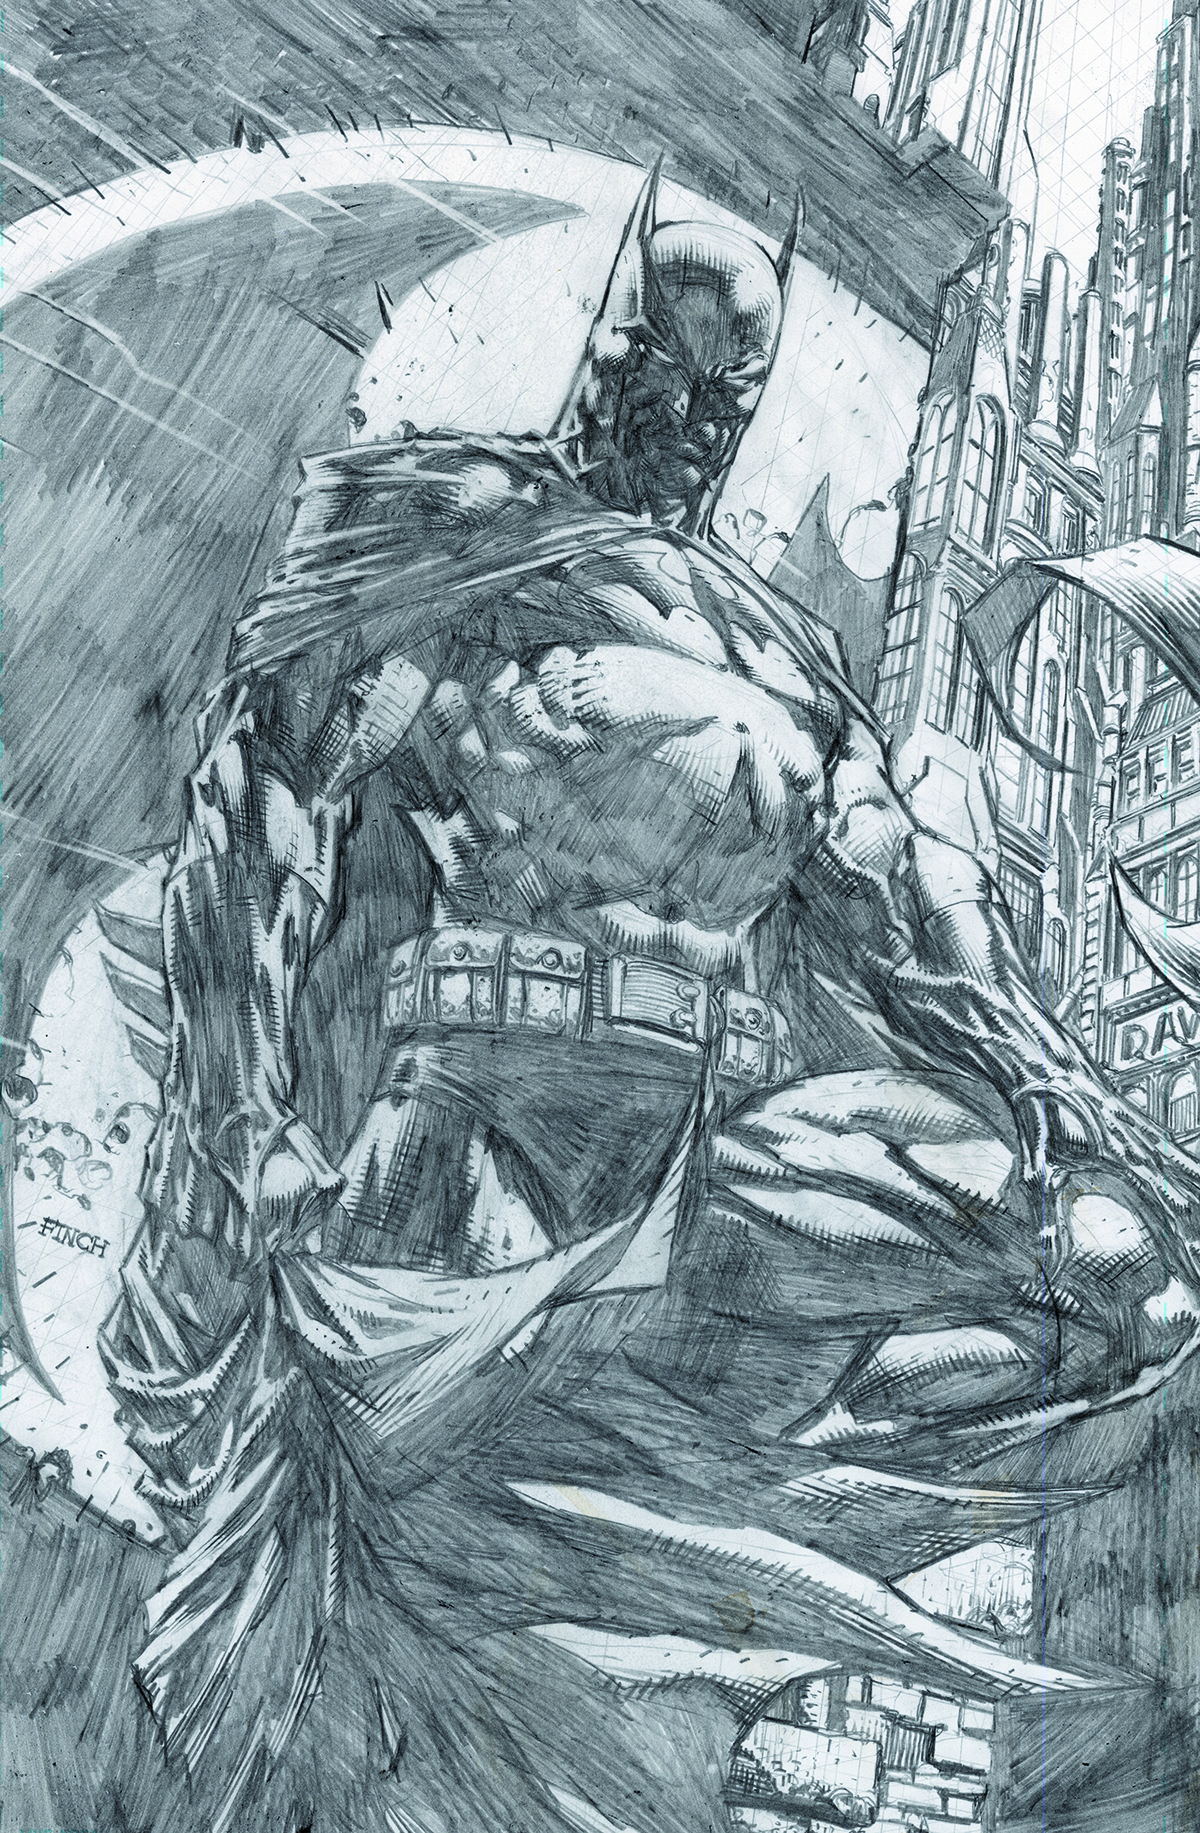 PREVIEWSworld - BATMAN DARK KNIGHT UNWRAPPED DAVID FINCH ...